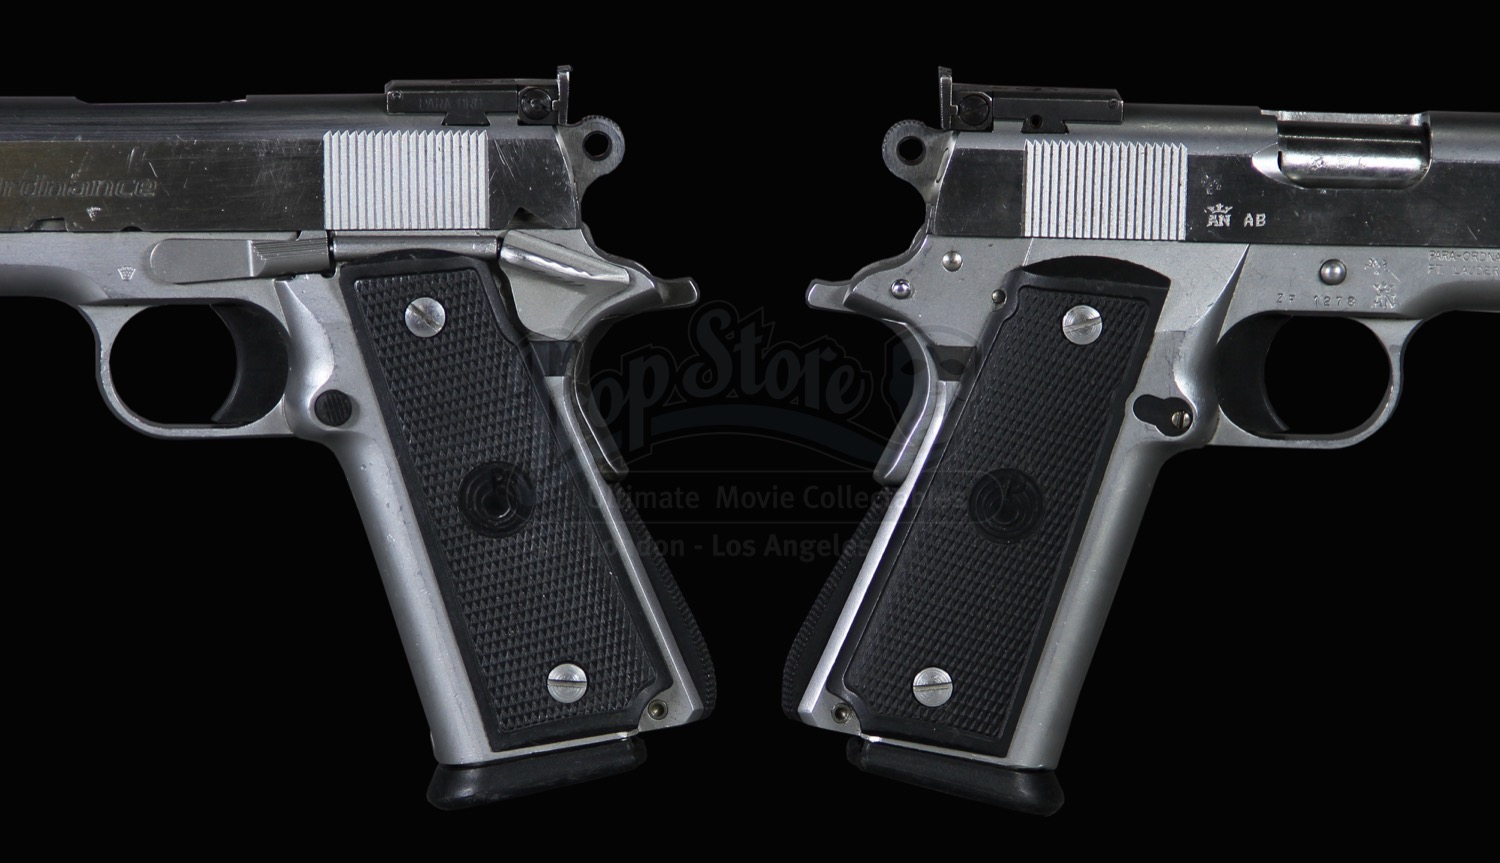 Hitman 2007 Agent 47 S Timothy Olyphant Pistols With Silencers Current Price 7000